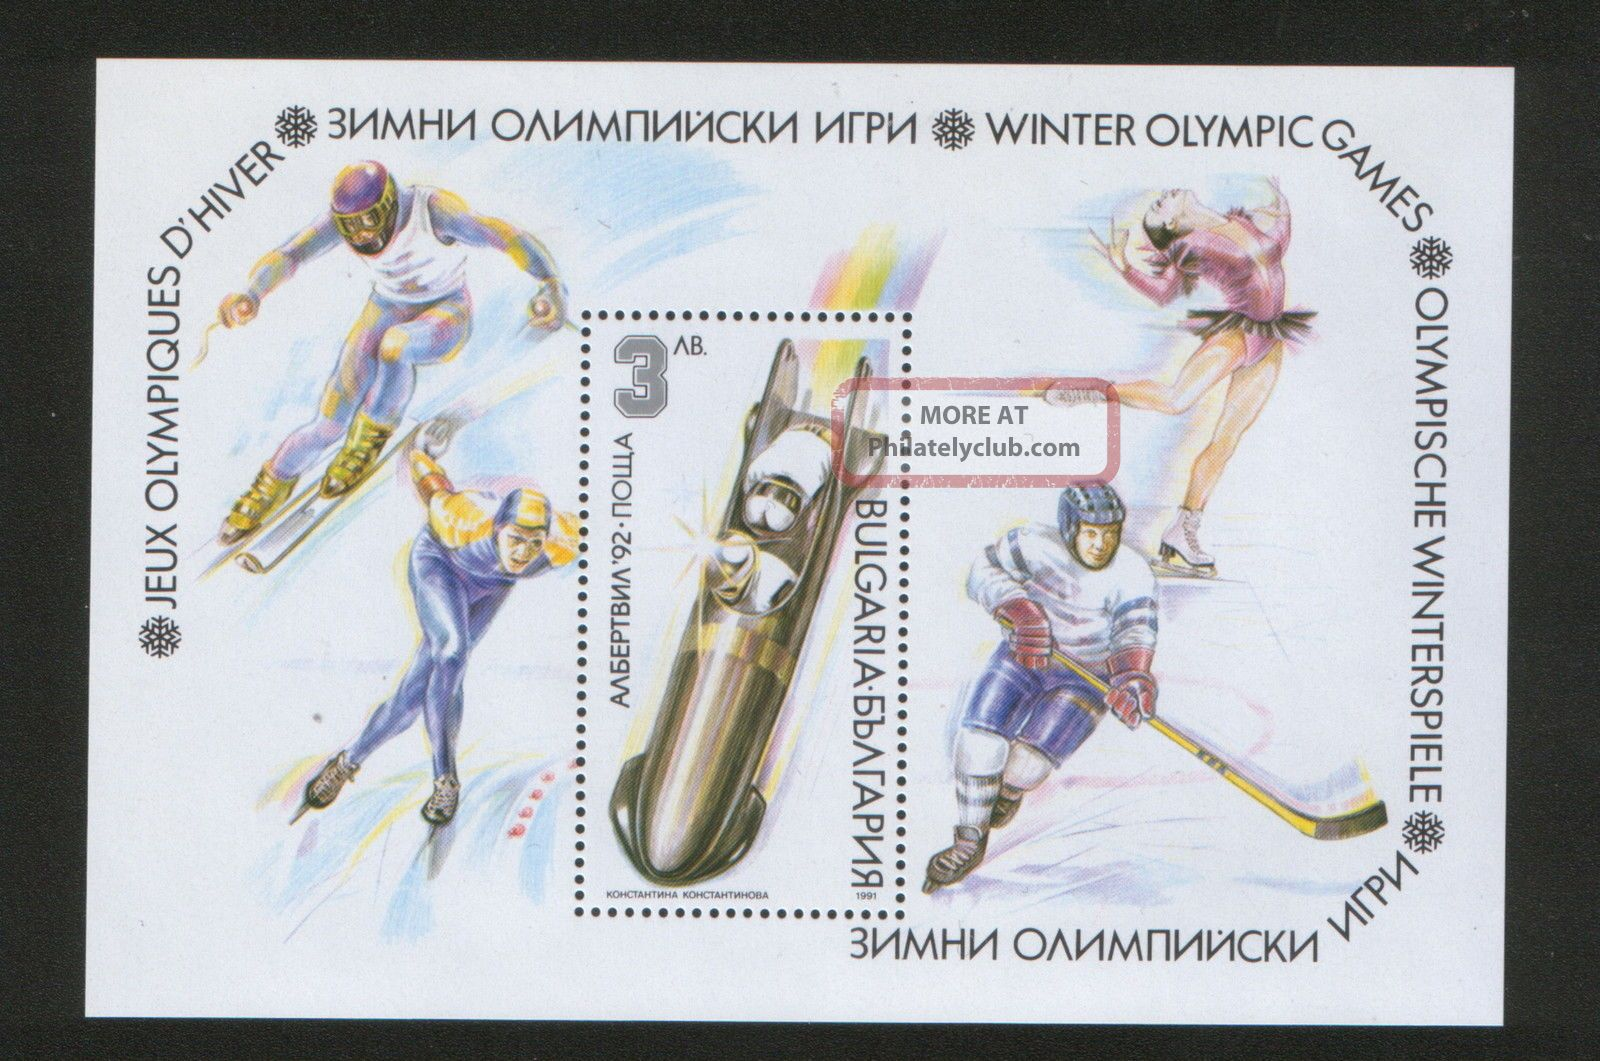 Bulgaria - Block - Alberville,  Winter Olympic Games - 1991. Sports photo